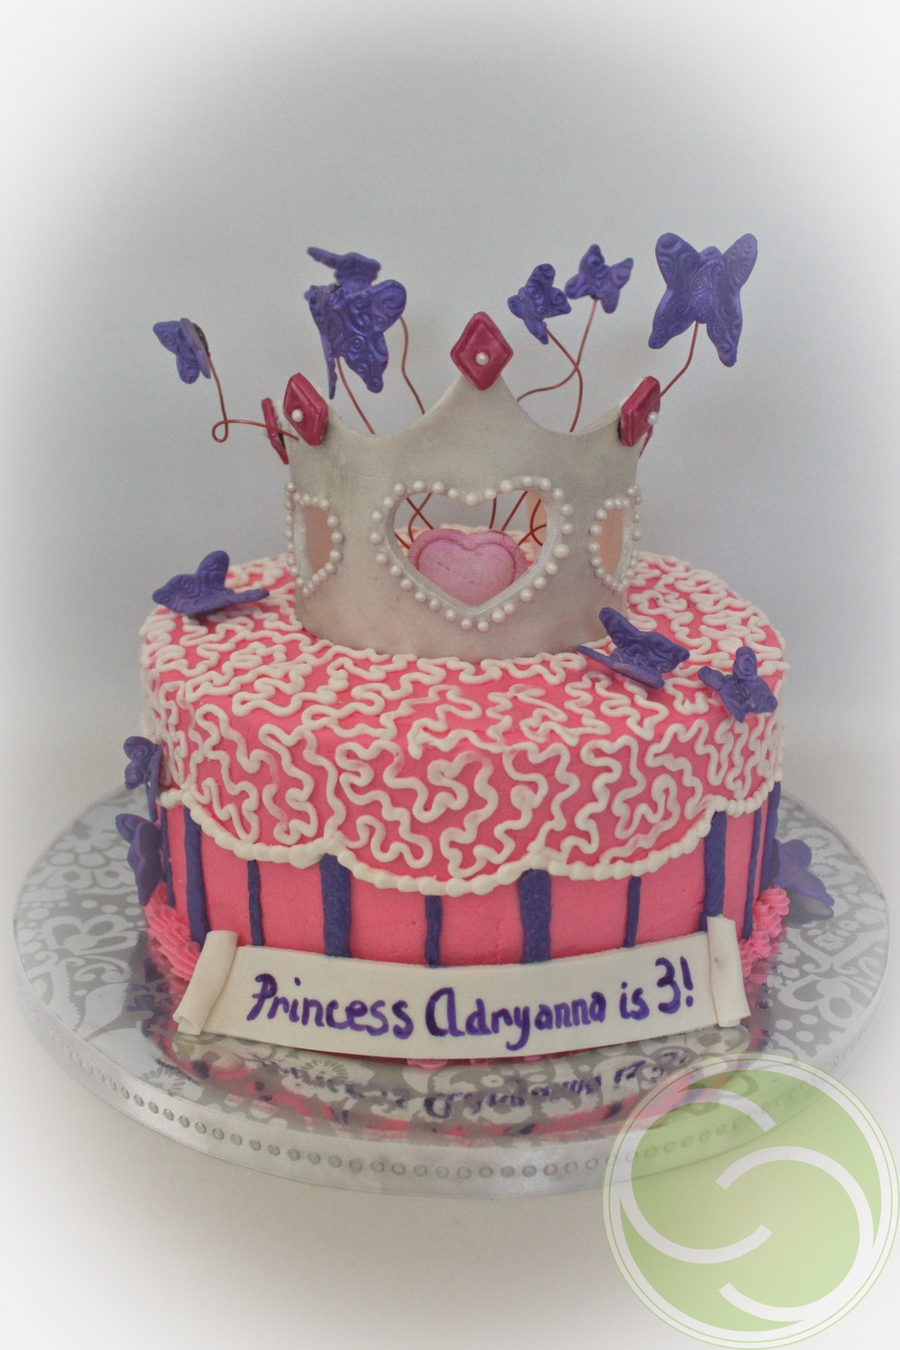 Princess Adryanna's Cake With Butterflies on Cake Central